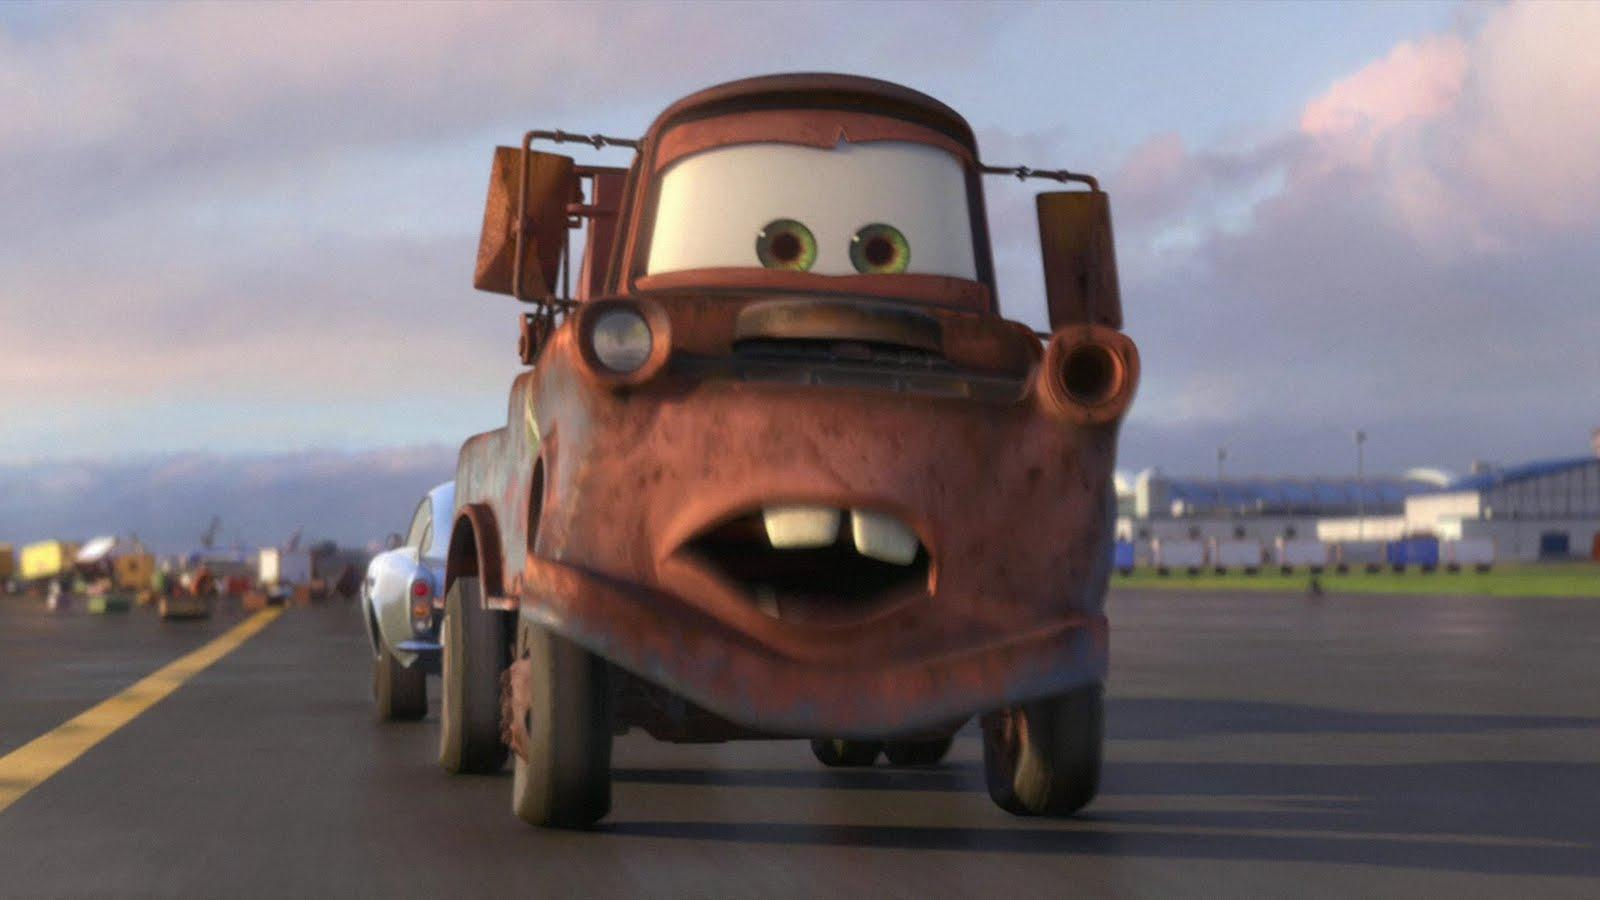 Cartoon Car Wallpaper free Download | Free Desk Wallpapers